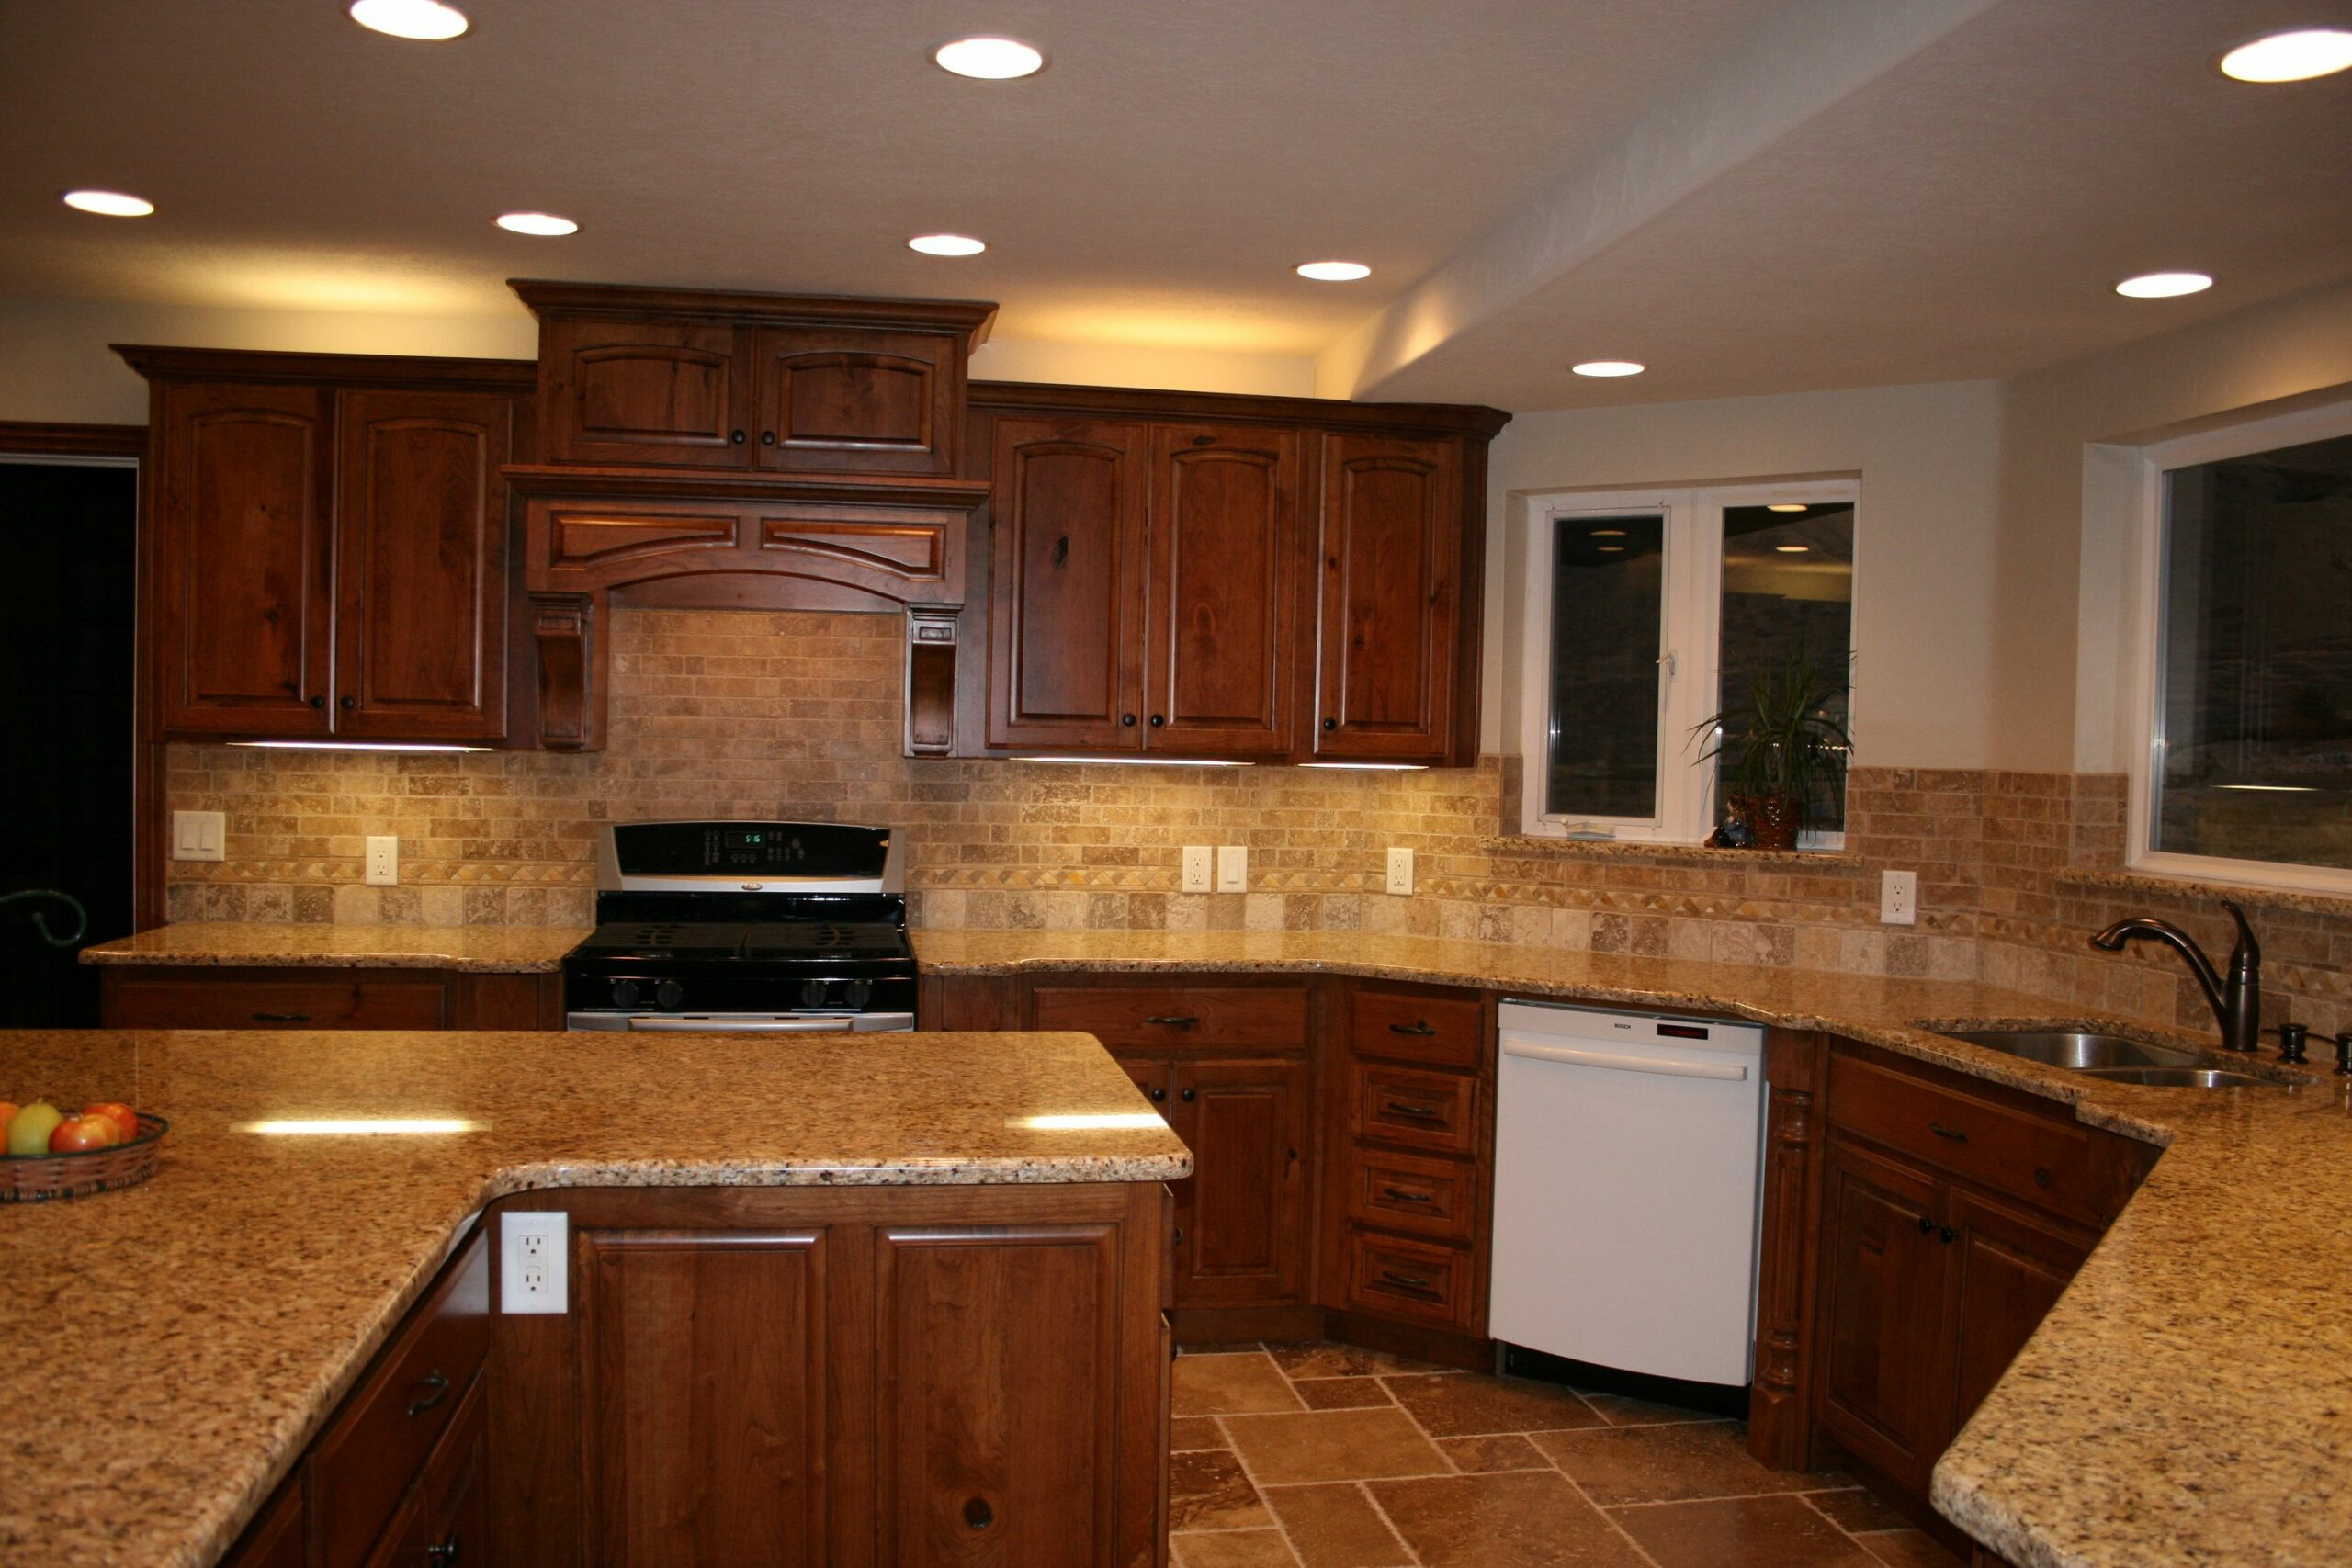 Kitchens With Cherry Cabinets And White Countertops